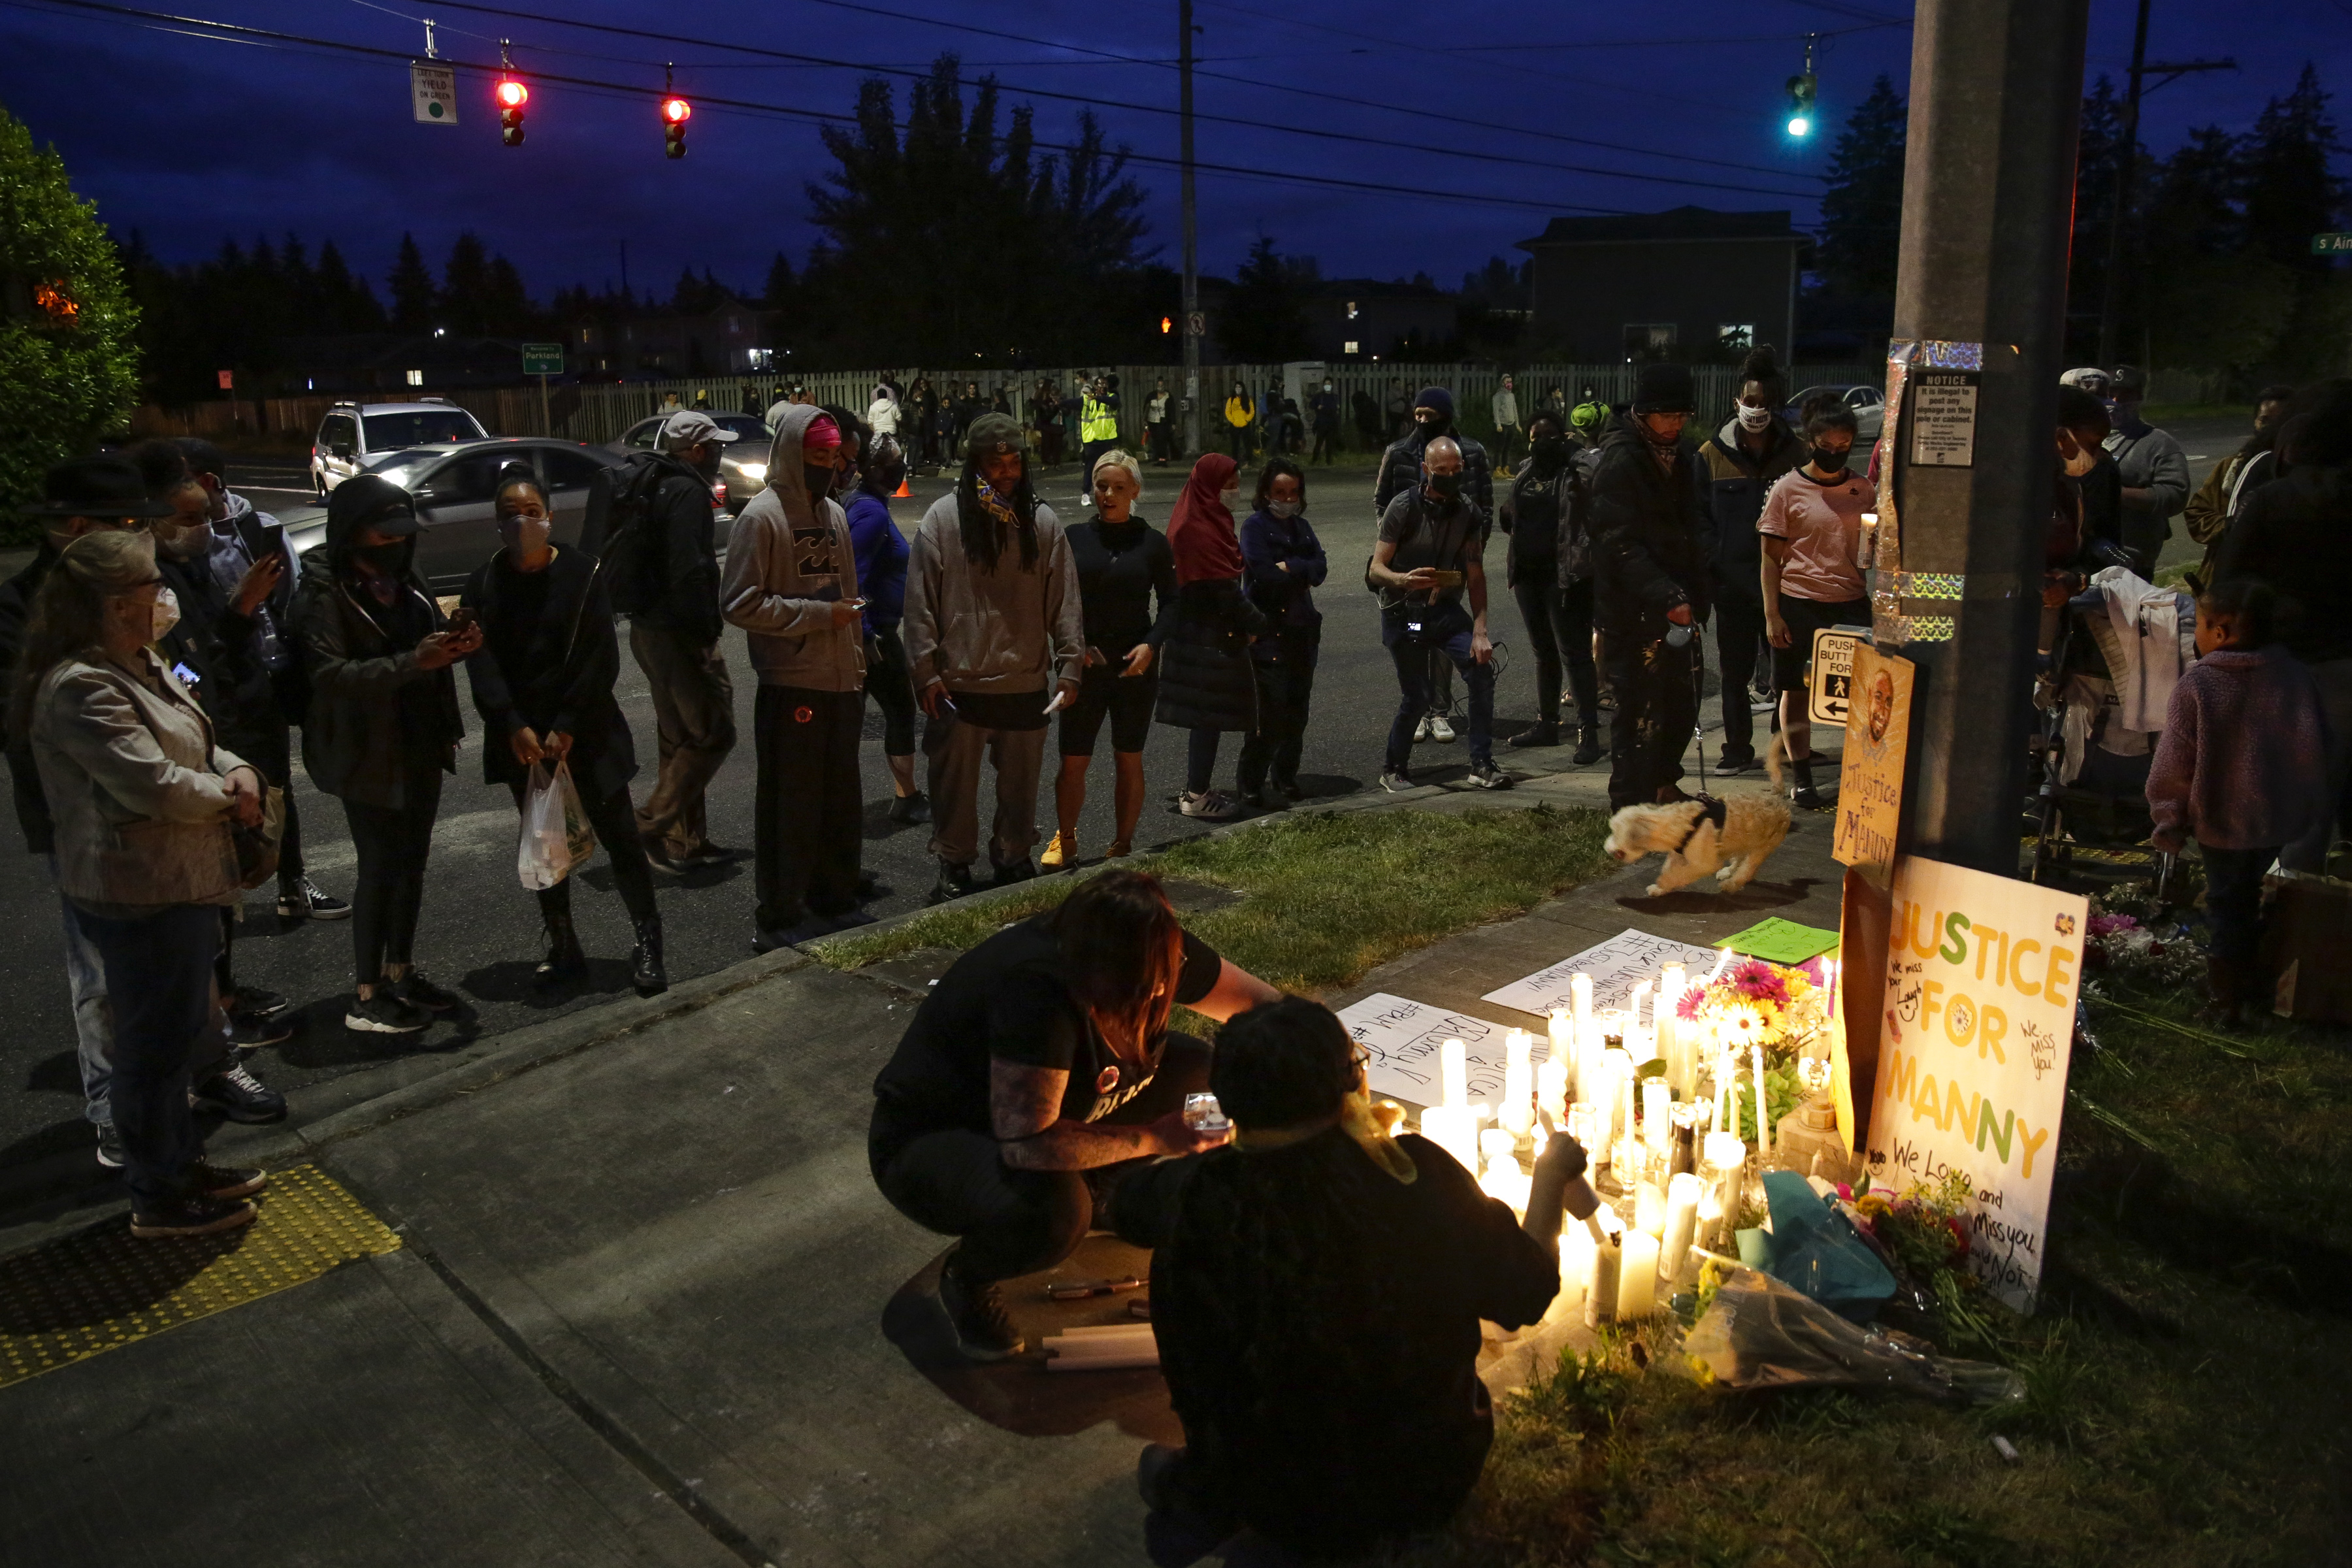 People gather and light candles at a makeshift memorial at the intersection where Manuel Ellis, a 33-year-old black man, died in Tacoma Police custody on March 3 and was recently ruled a homicide, according to the Pierce County Medical Examiners Office, in Tacoma, Washington on June 3, 2020. - US protesters welcomed new charges brought June 3 against Minneapolis officers in the killing of African American man George Floyd -- but thousands still marched in cities across the country for a ninth straight night, chanting against racism and police brutality. (Photo by Jason Redmond / AFP) (Photo by JASON REDMOND/AFP via Getty Images)